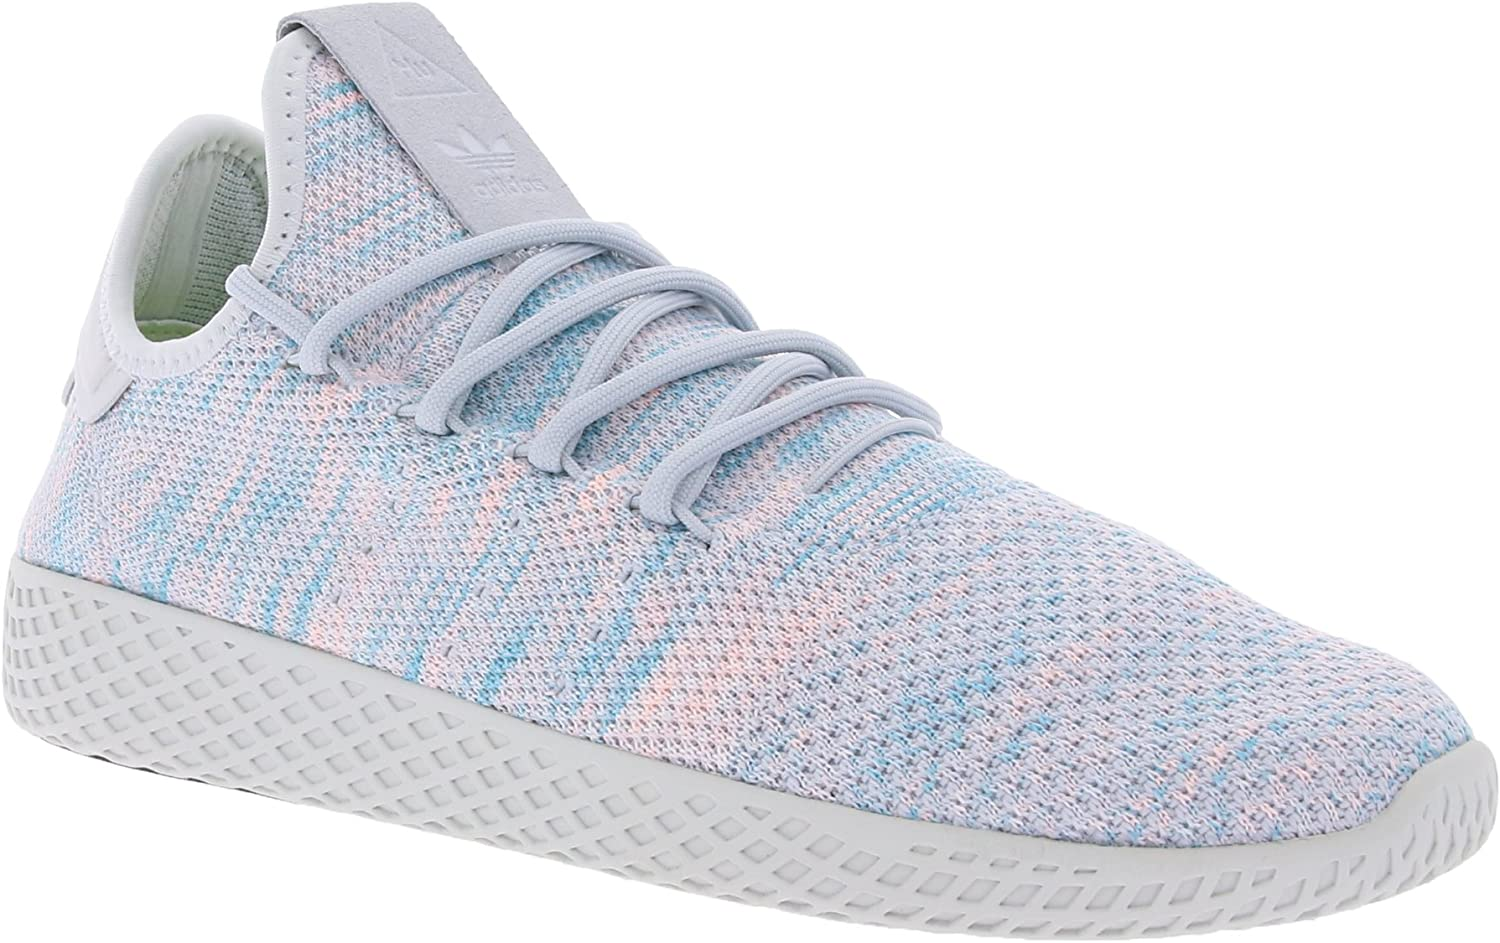 Adidas Originals Pw Tennis Hu Mens Synthetic Material Trainers White